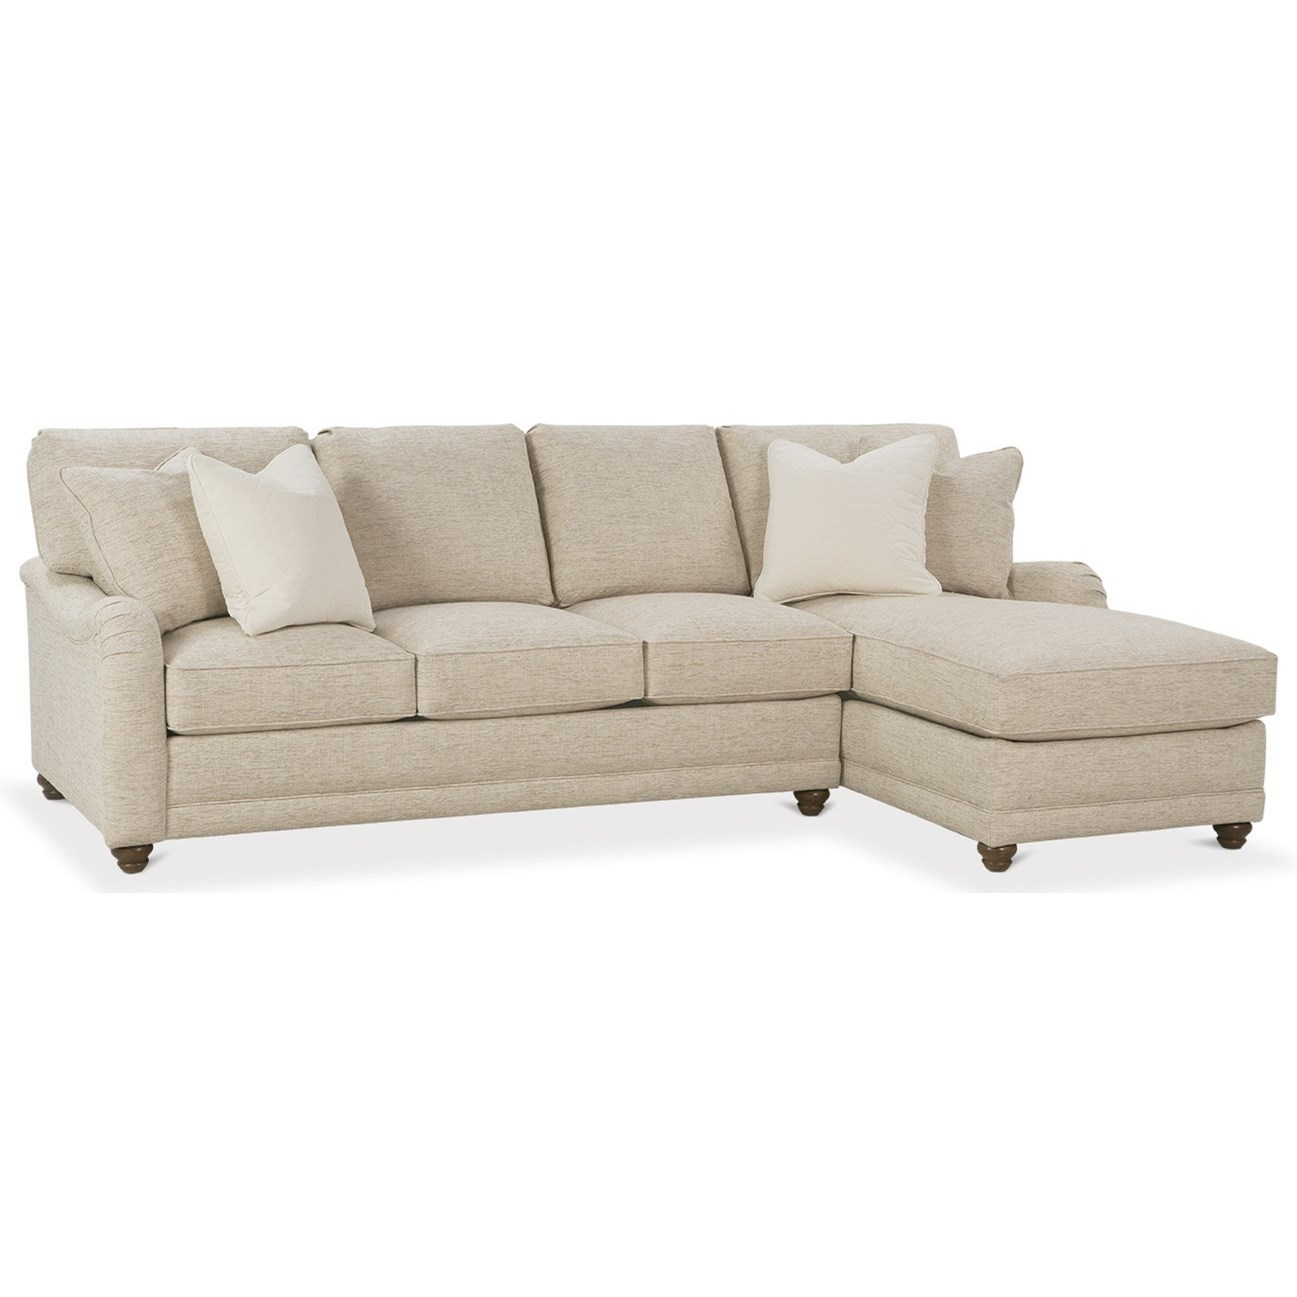 My Style I Customizable Sectional Sofa  by Rowe at Steger's Furniture